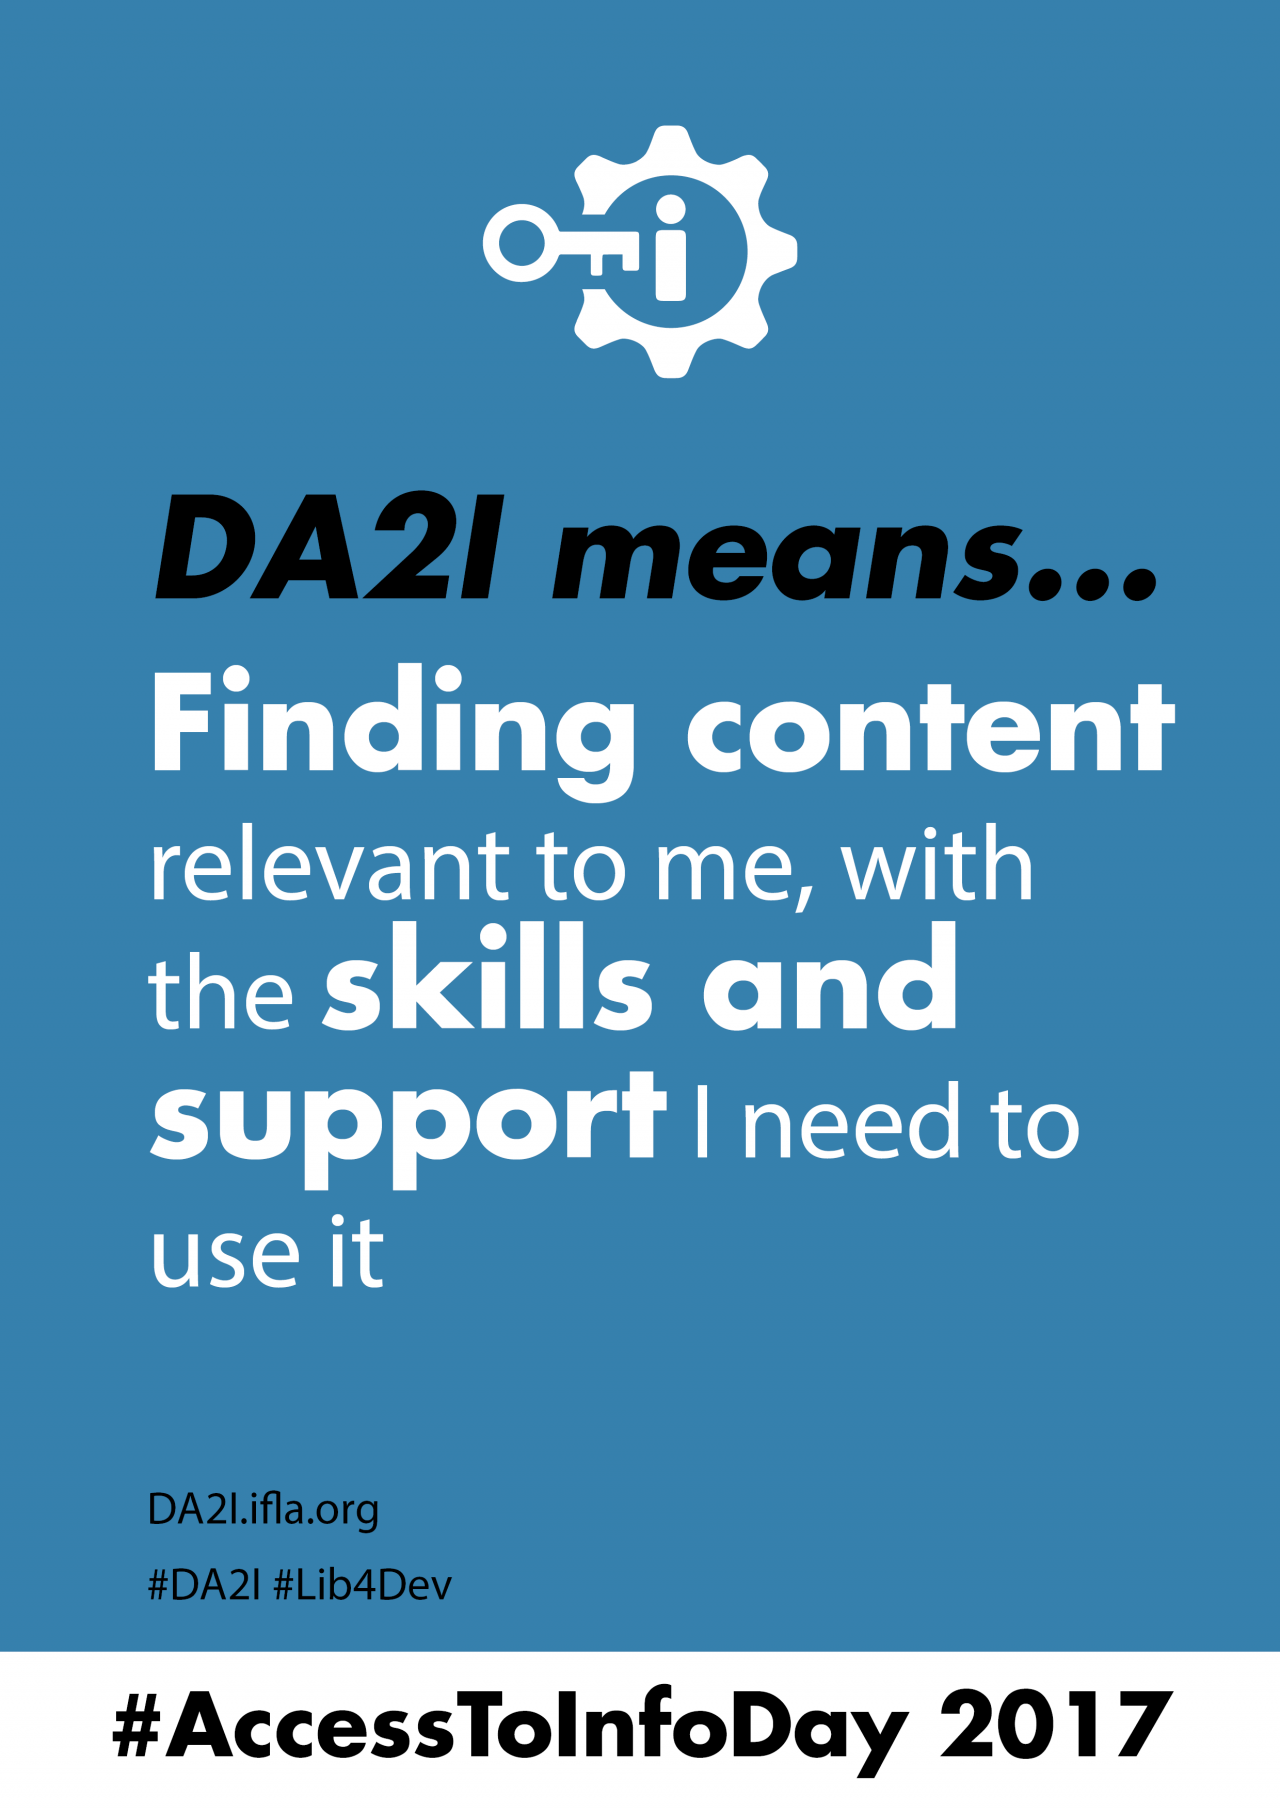 DA2I means finding content relevant to me, with the skills and support I need to use it